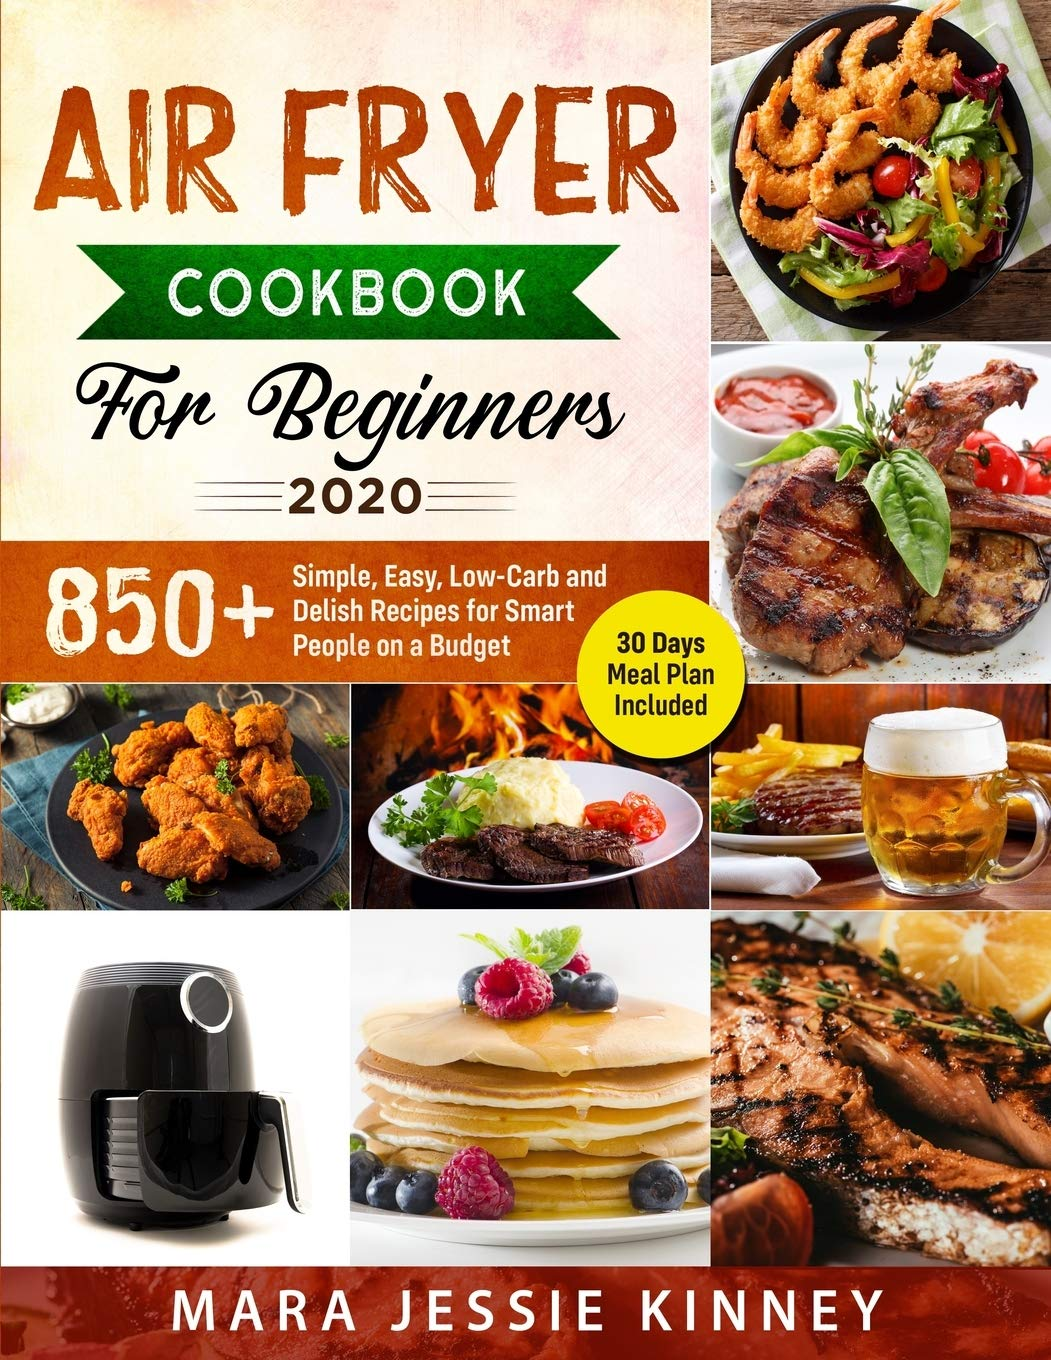 Air Fryer Cookbook for Beginners 2020: 850+ Simple, Easy, Low-Carb and Delish Recipes for Smart People on a Budget (30 days Meal Plan Included) 1